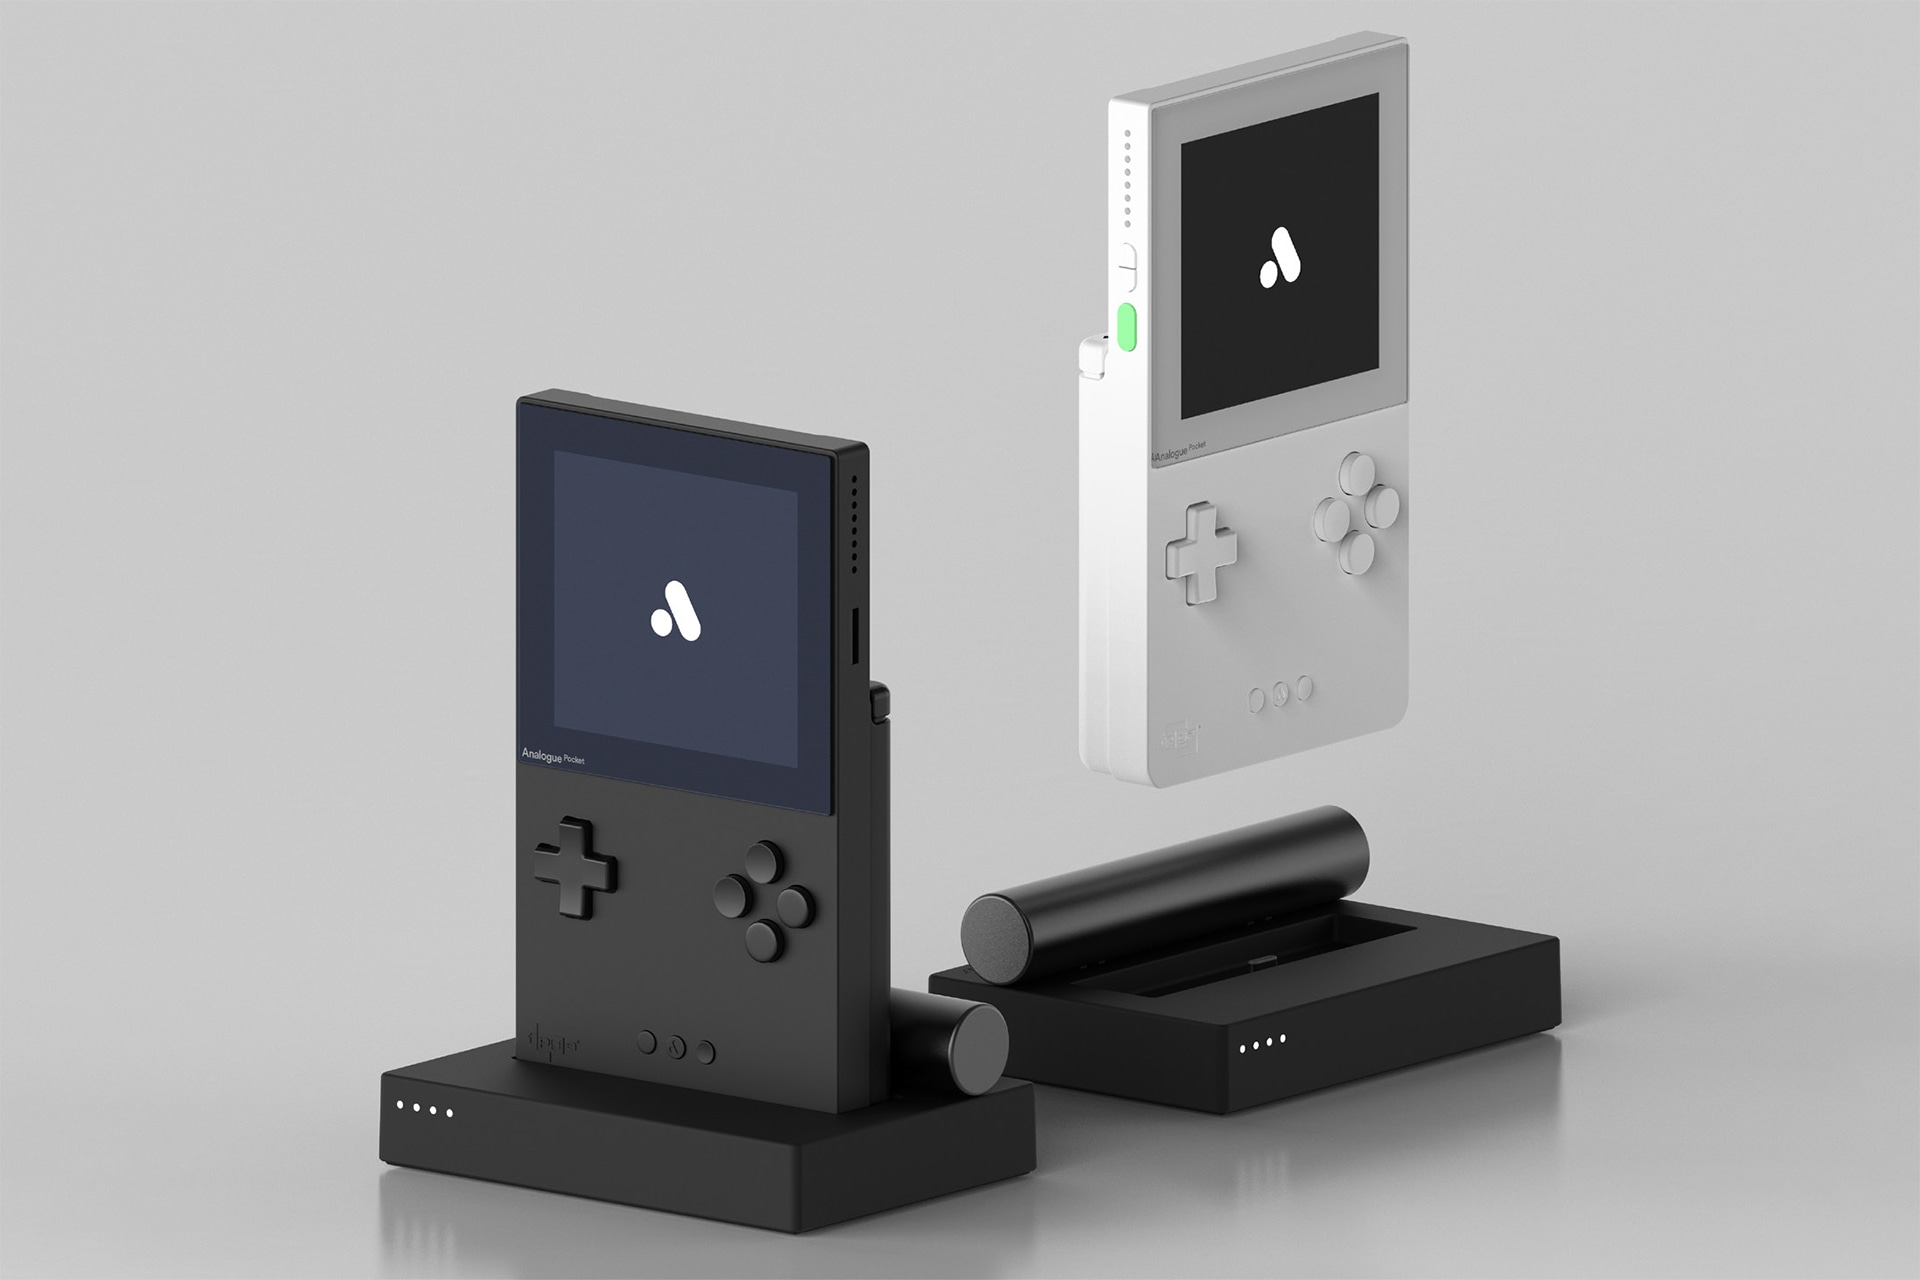 Best Handheld Emulator 2021 Analogue's portable Pocket console is delayed until May 2021